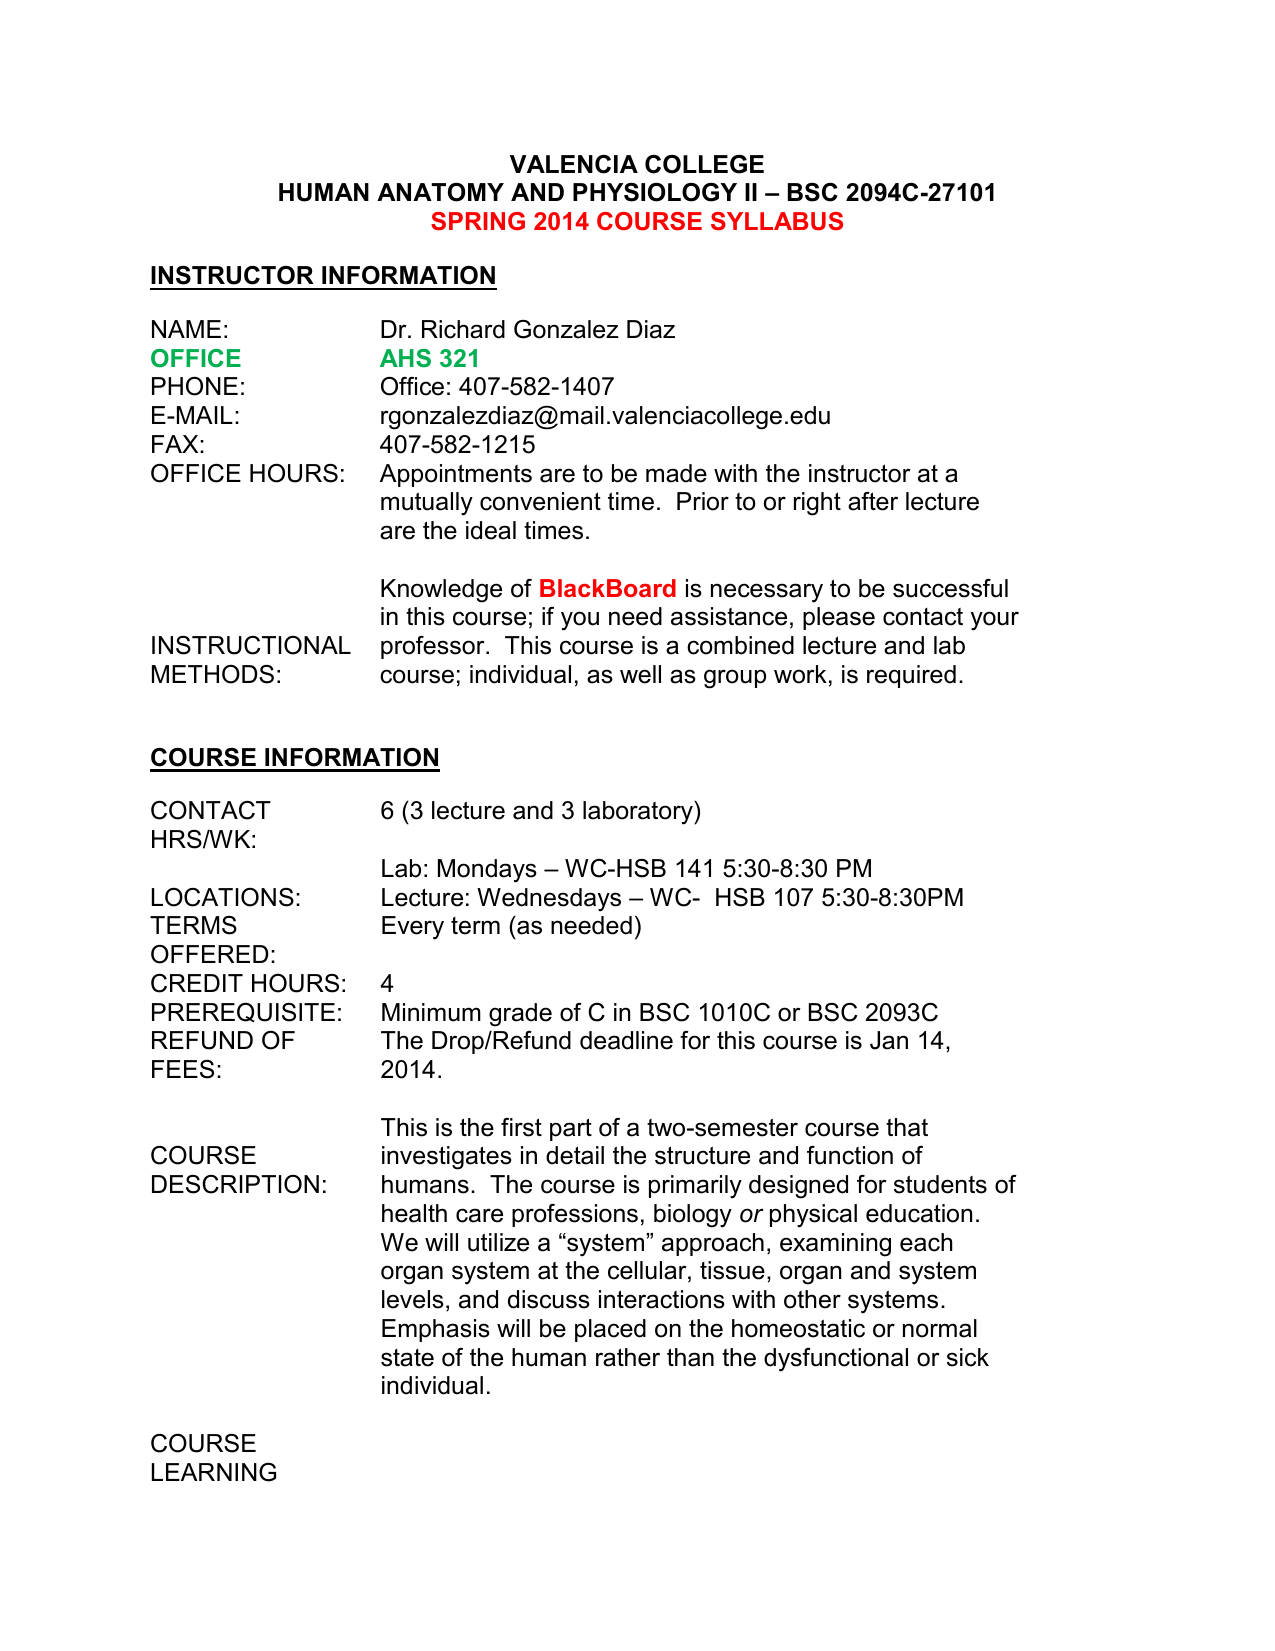 Example Of An Outline Of An Essay Essay On Childhood Events Wishes Music In My Life Essay also Essays On Water Publish An Essay Gst In India Argument Essay Paper Outline